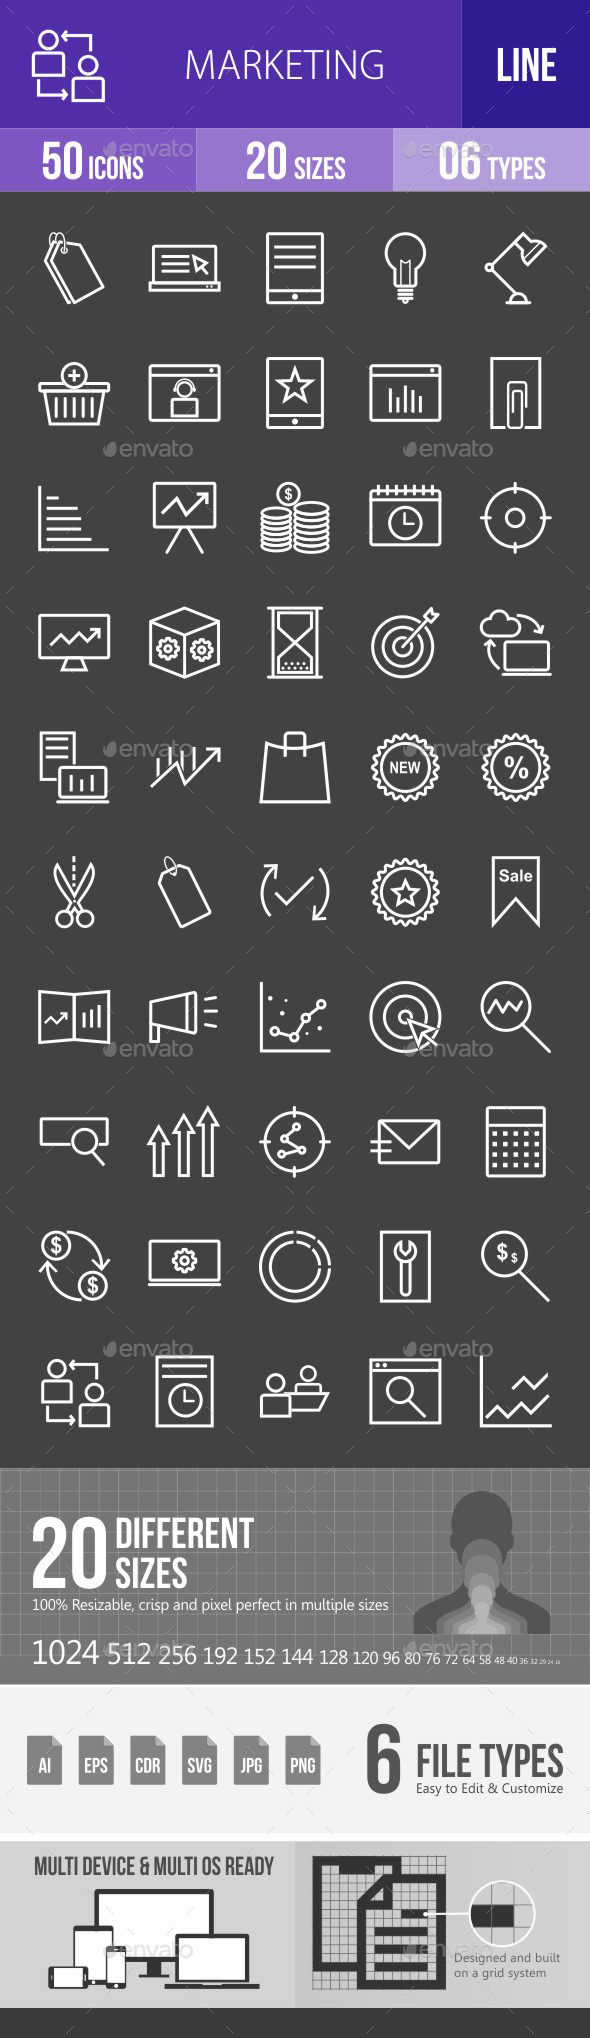 Marketing Line Inverted Icons - Icons